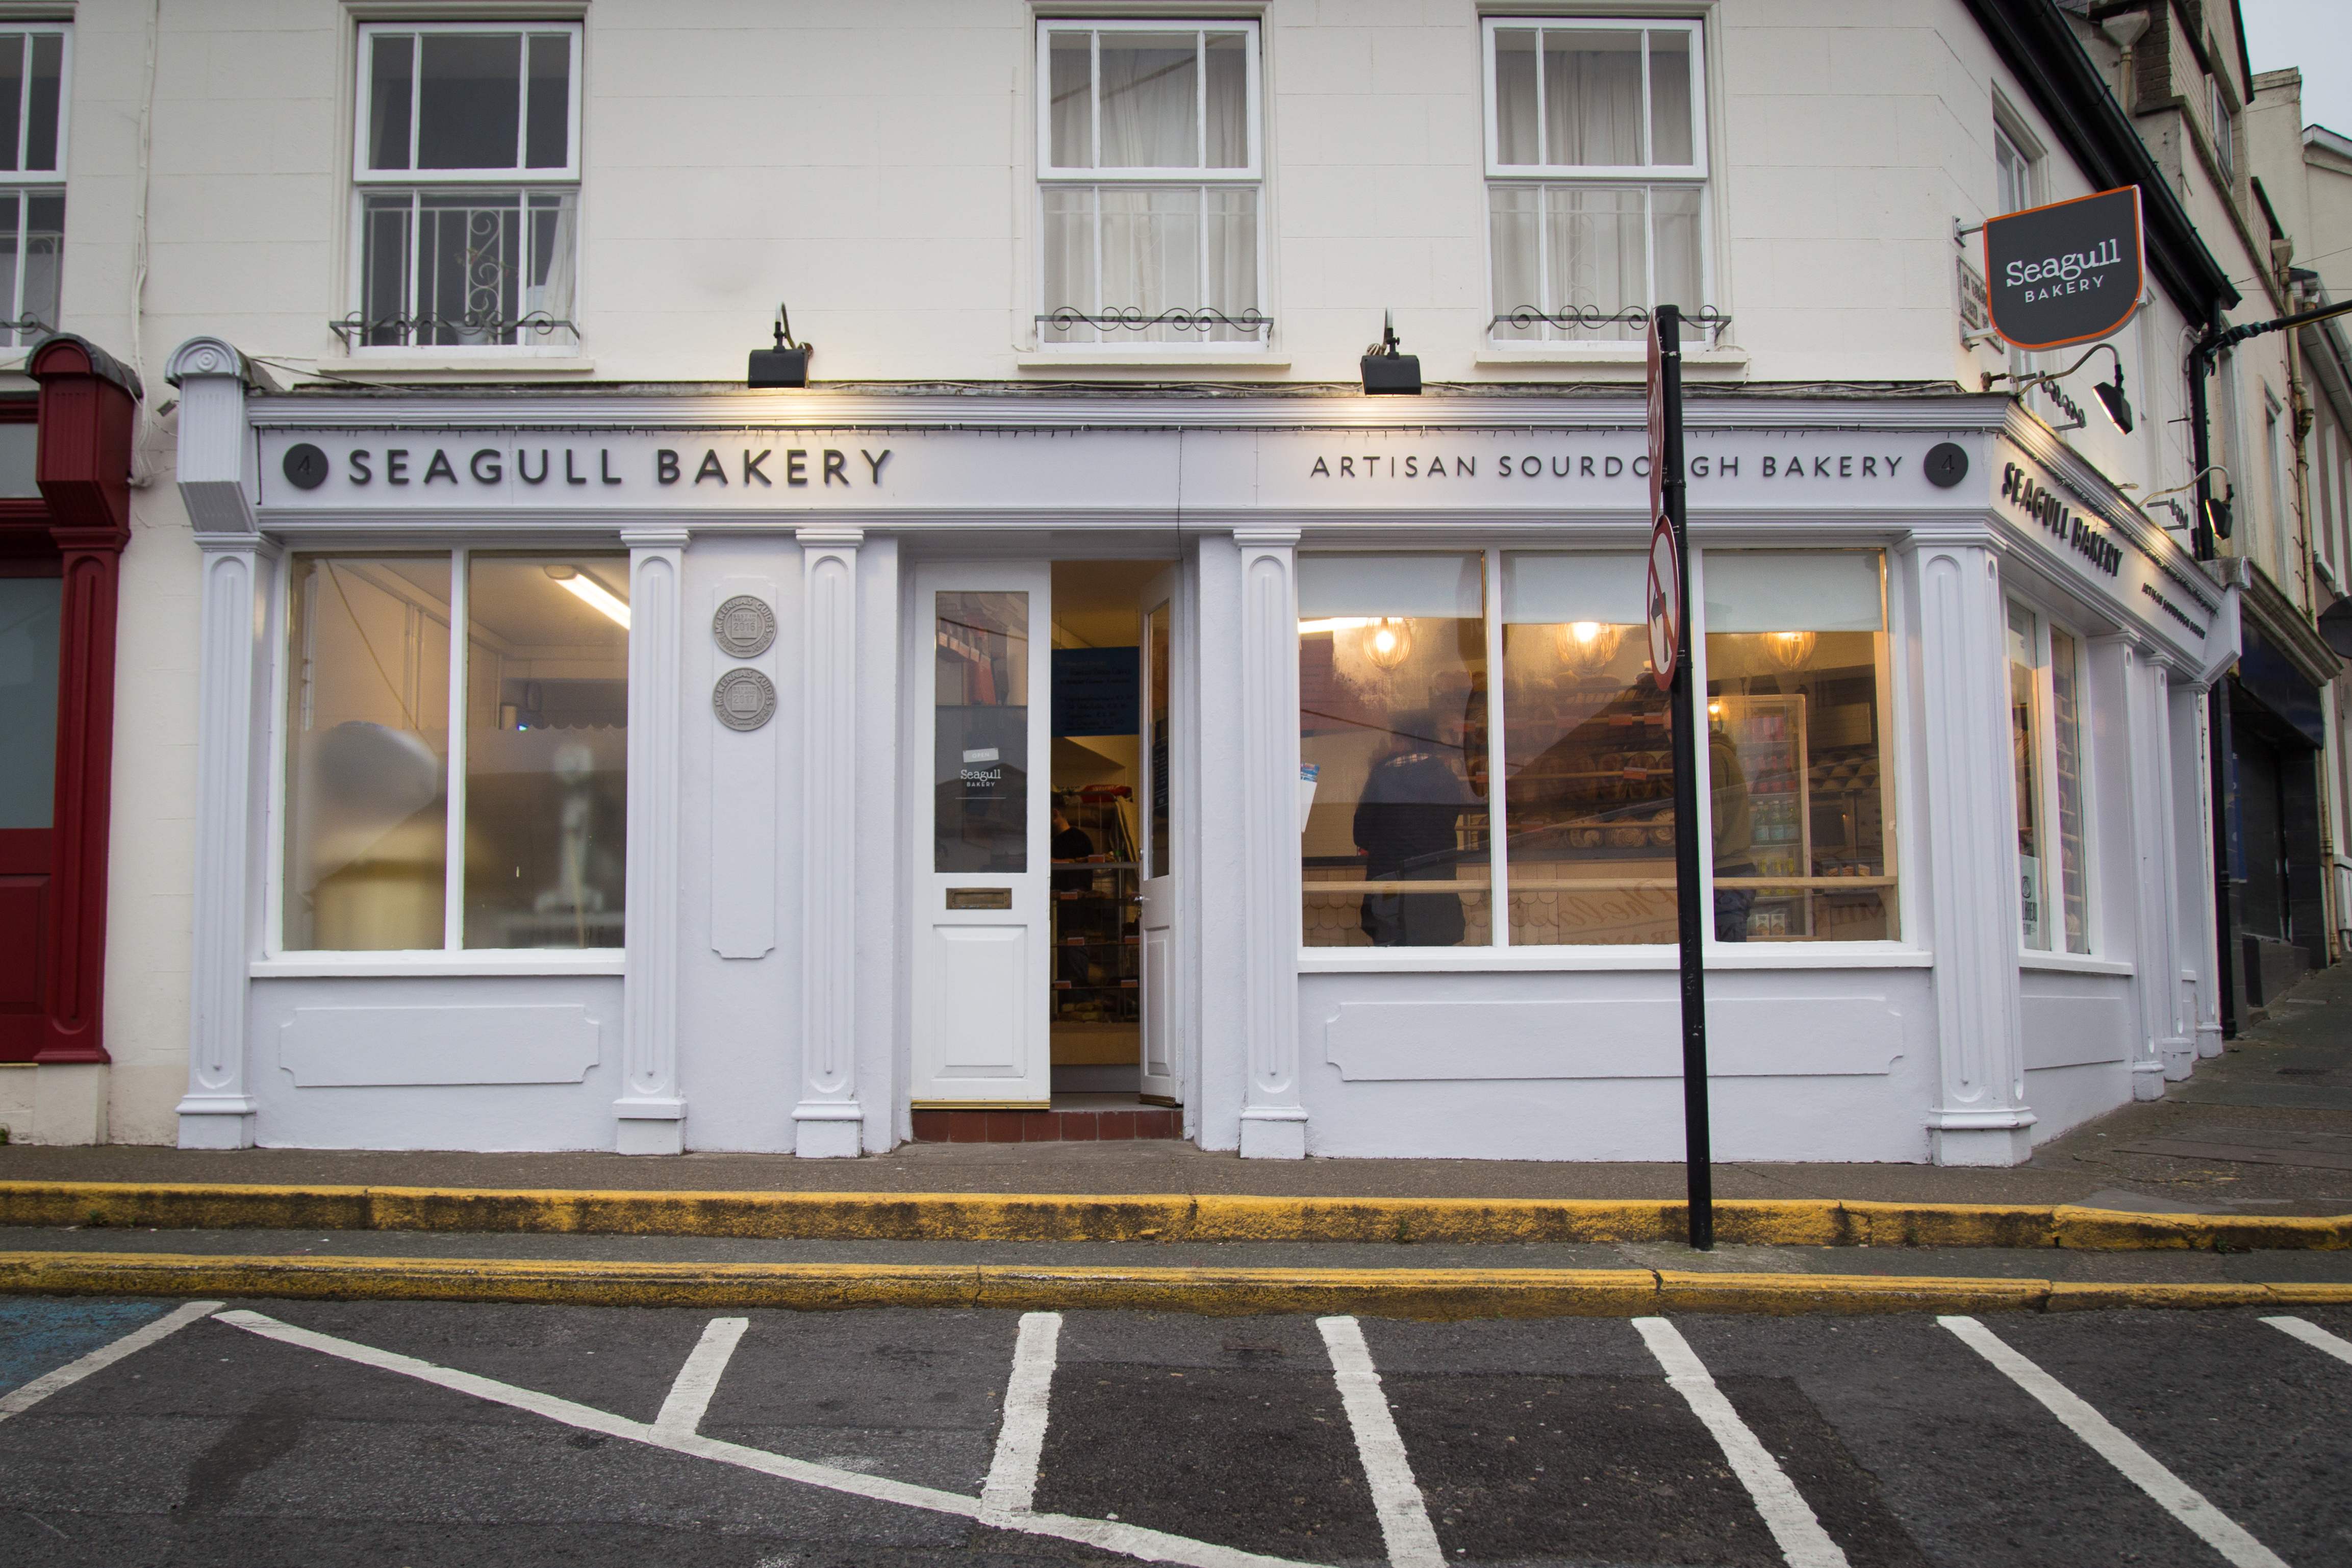 Cover image: Seagull Bakery